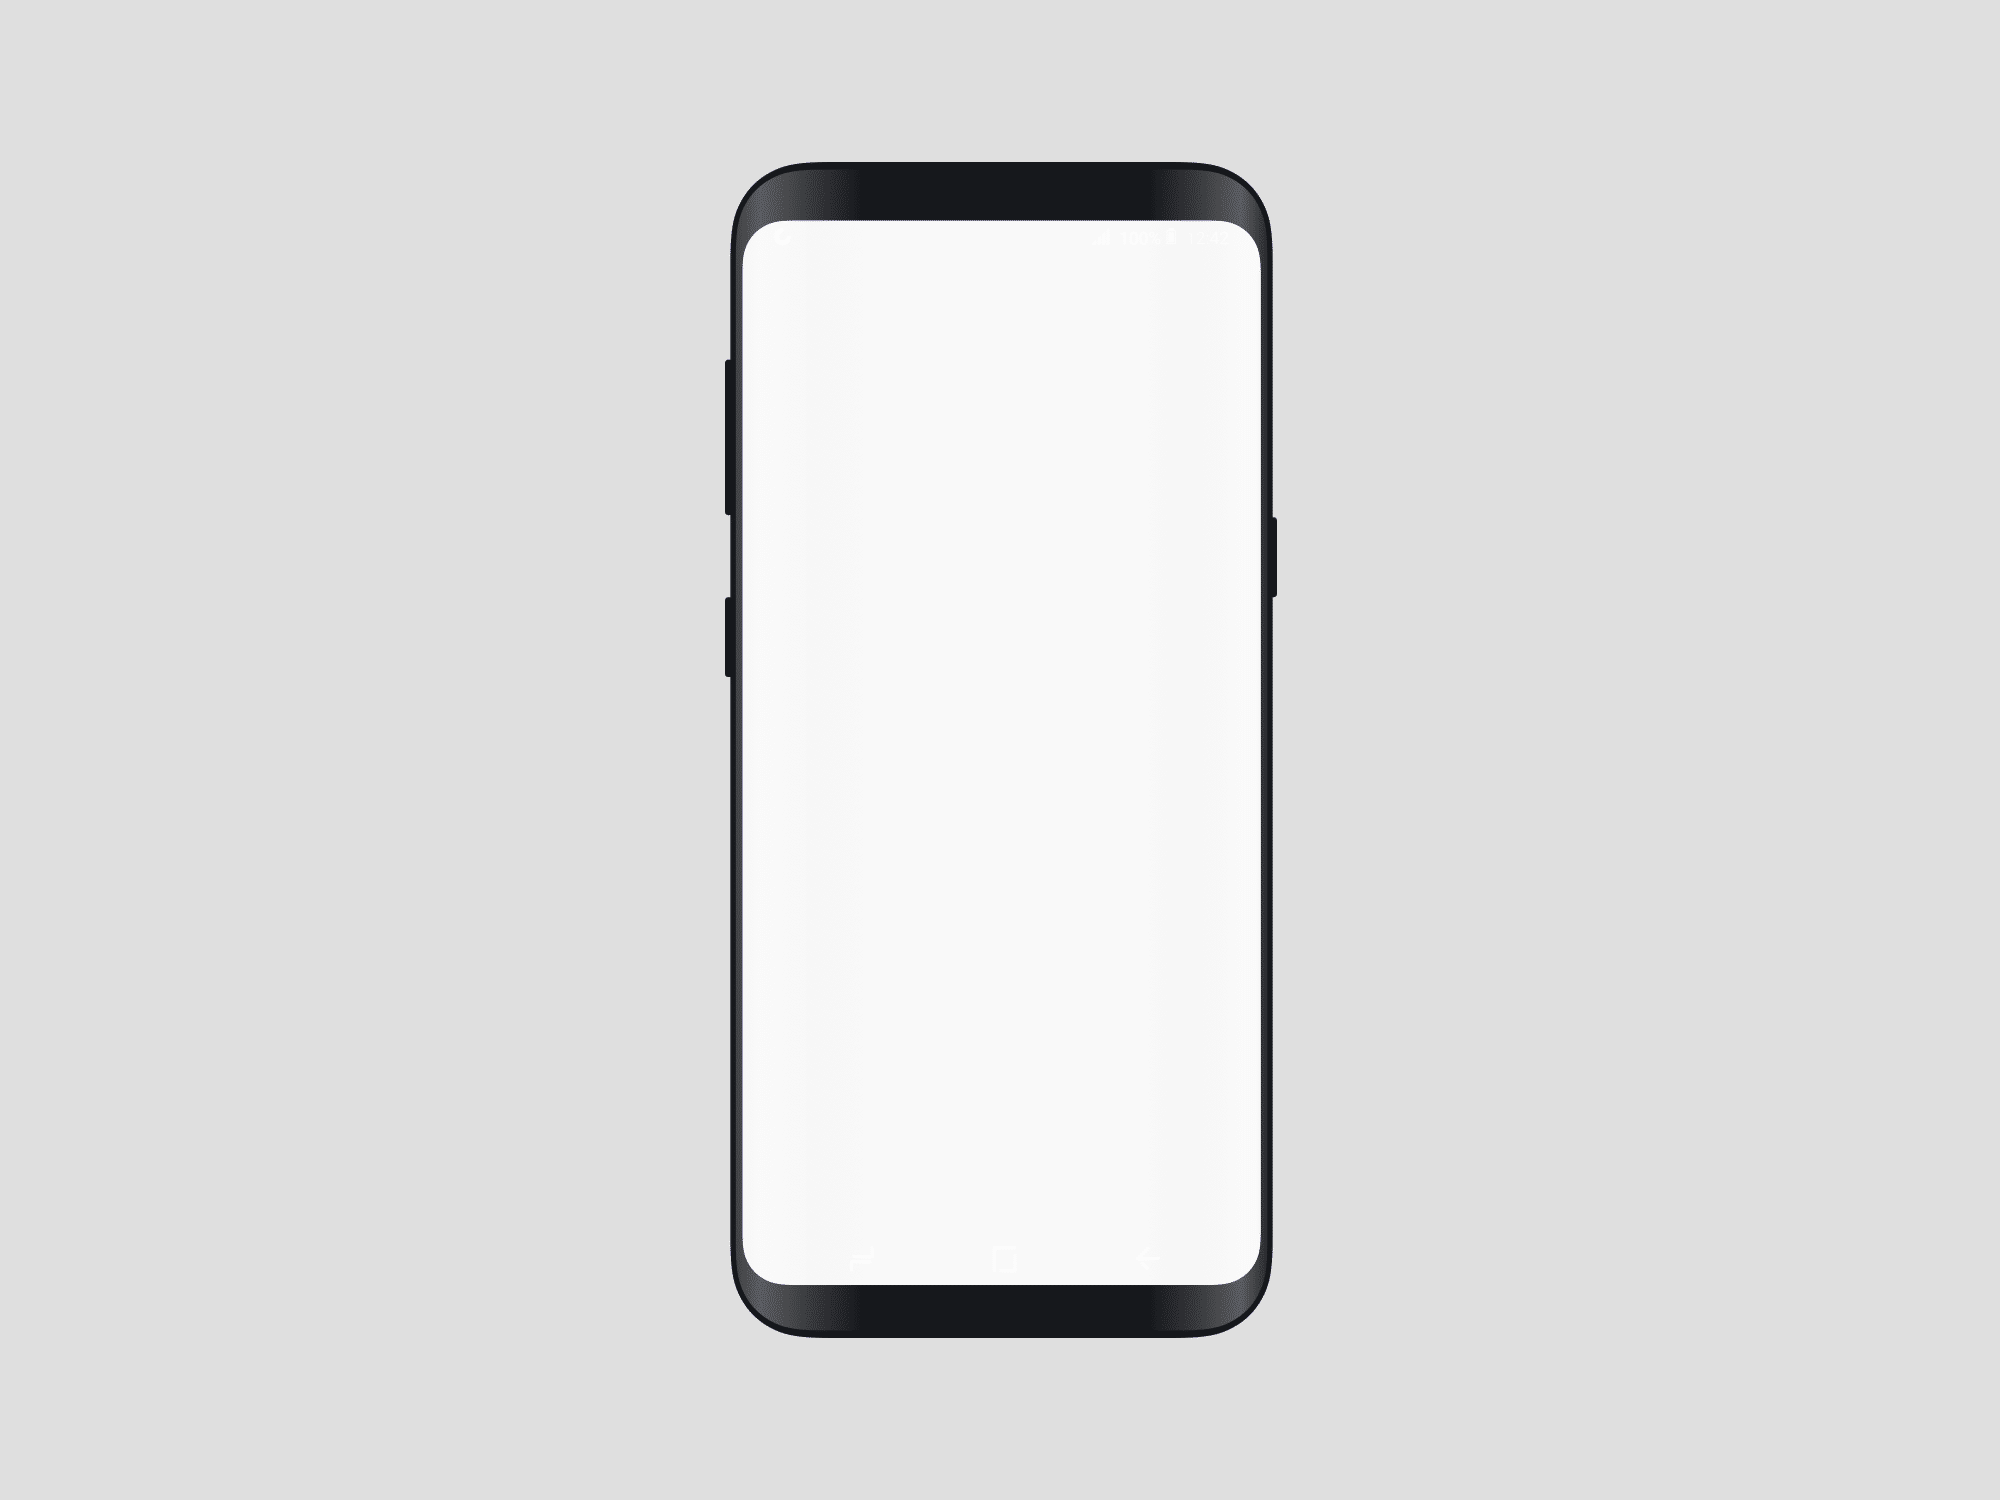 samsung galaxy s8 vector mockup the mockup club apple vector png logo vector logo apple store